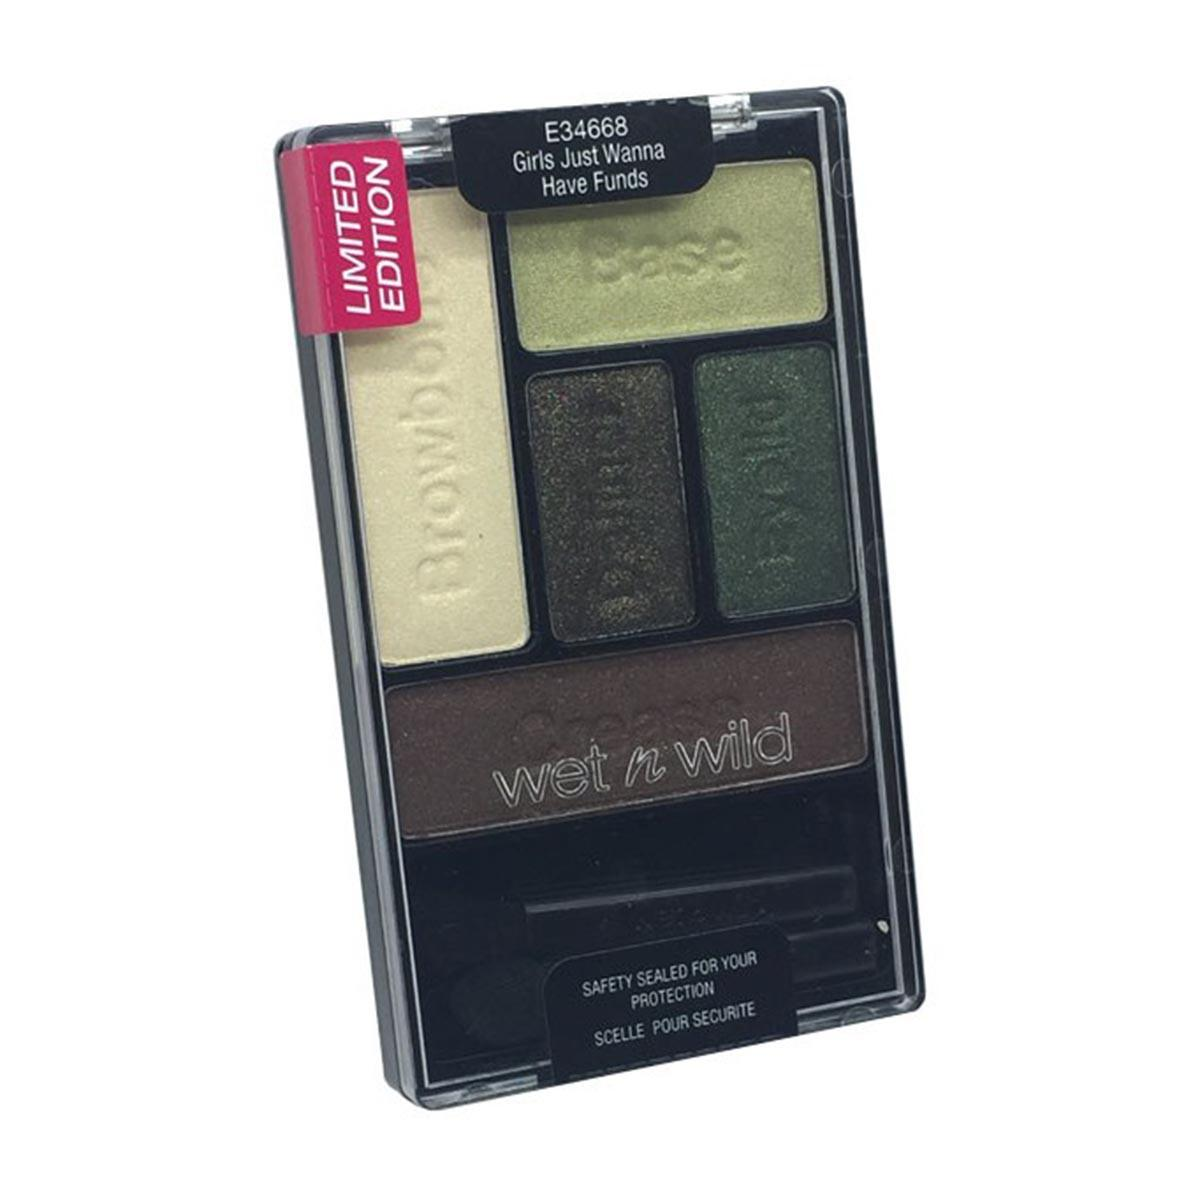 Wet n wild Eyeshadow Girls Just Wanna Have Funds